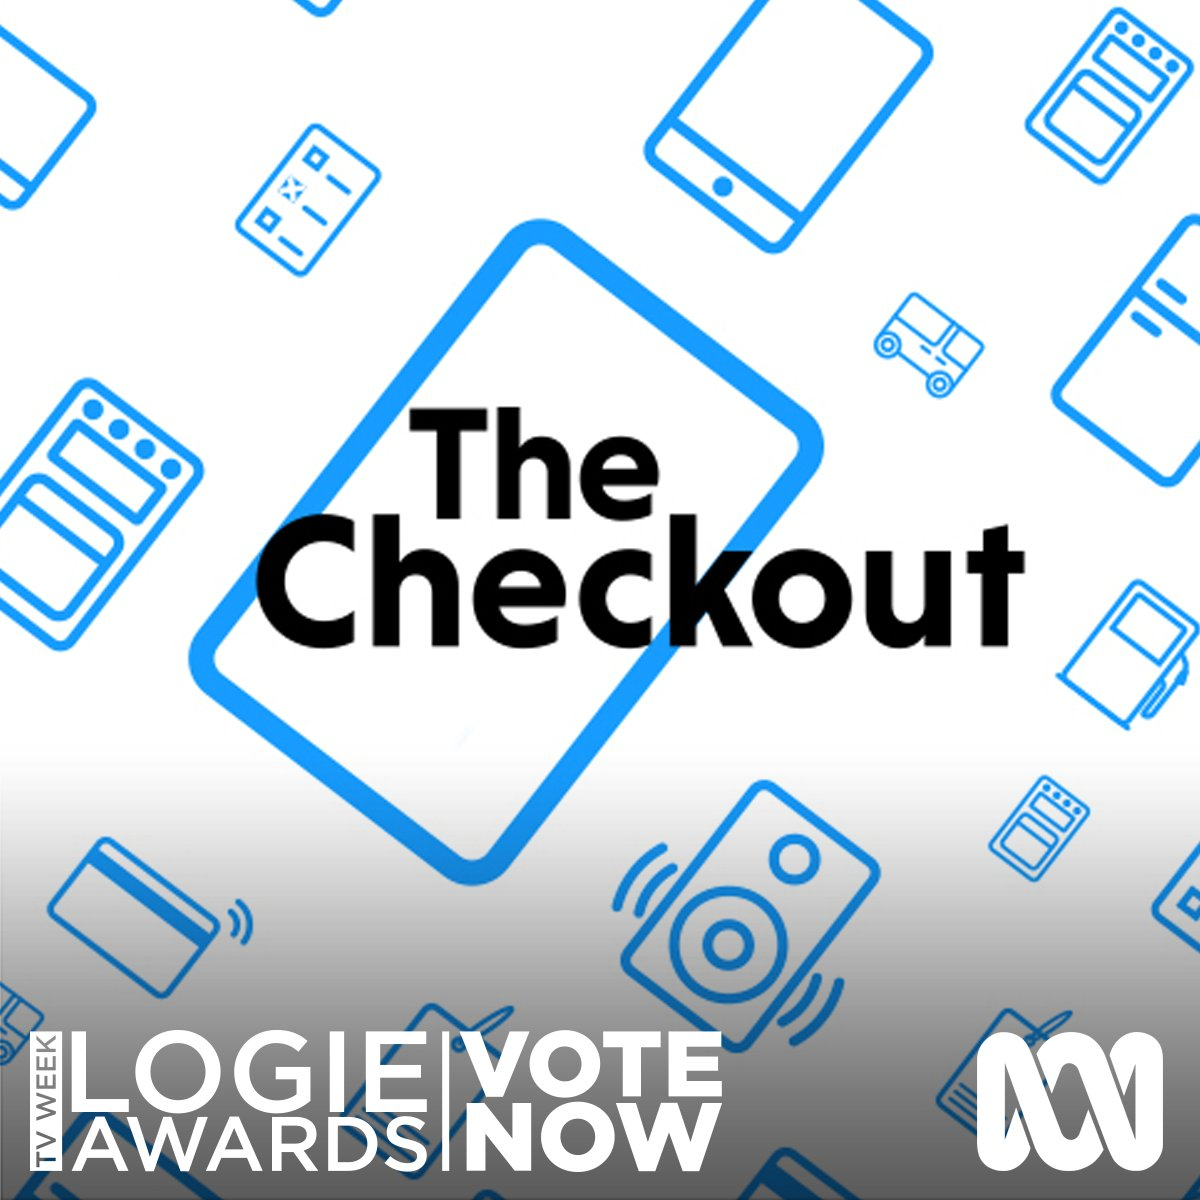 Voting for the 2018 @TVWEEKmag Logie Awards is now open. Vote for @checkouttv for the Most Popular Lifestyle Program! #tvweeklogies tvweeklogieawards.com.au